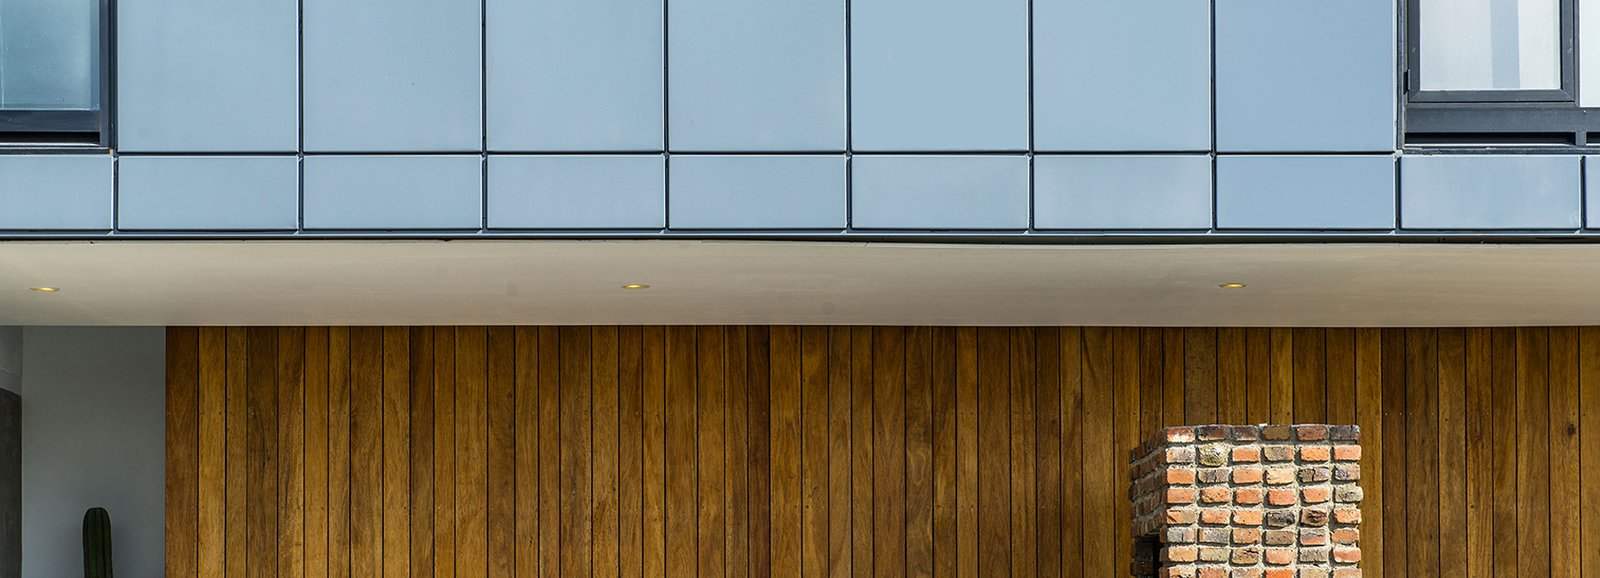 Detail - North Facade Tagged: Outdoor, Front Yard, and Wood Patio, Porch, Deck. Casa MA by e|arquitectos